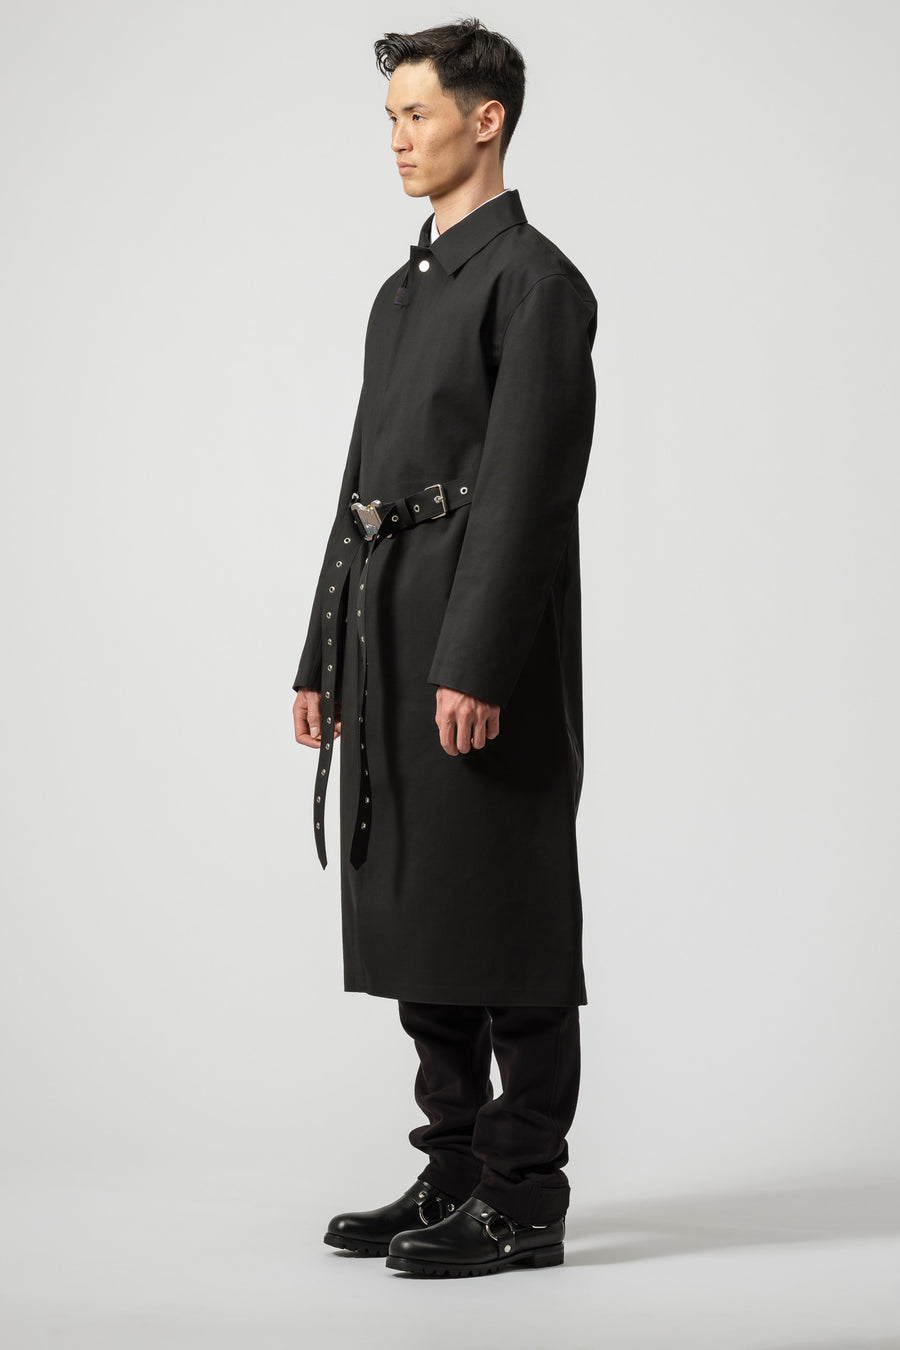 1017 ALYX 9SM x Mackintosh Formal Coat in Black - Notre